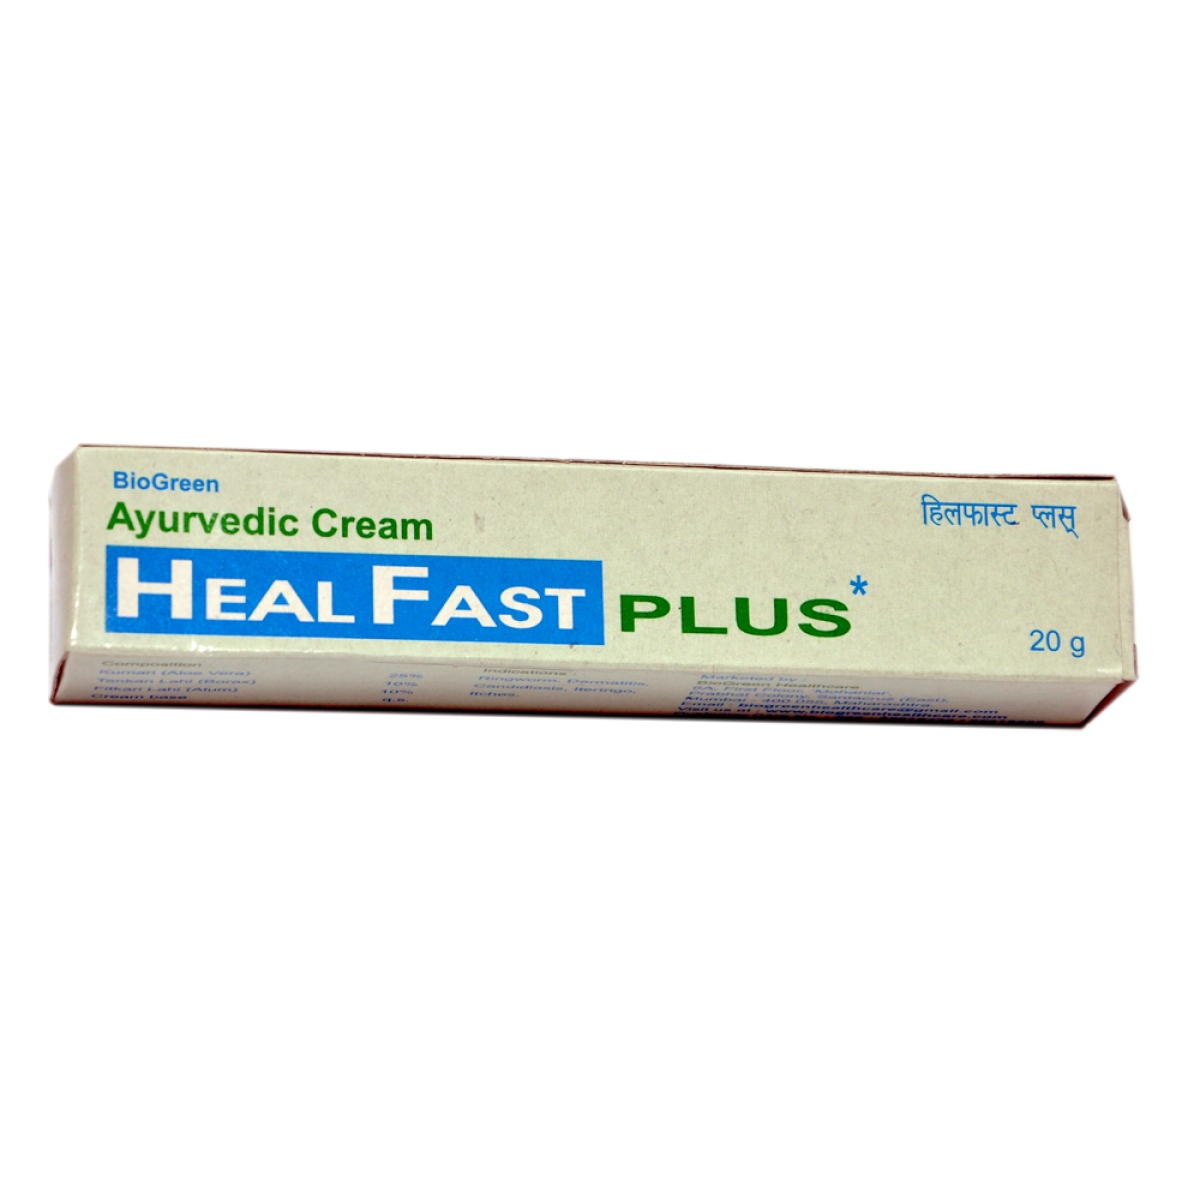 Heal Fast Plus In Fatehabad